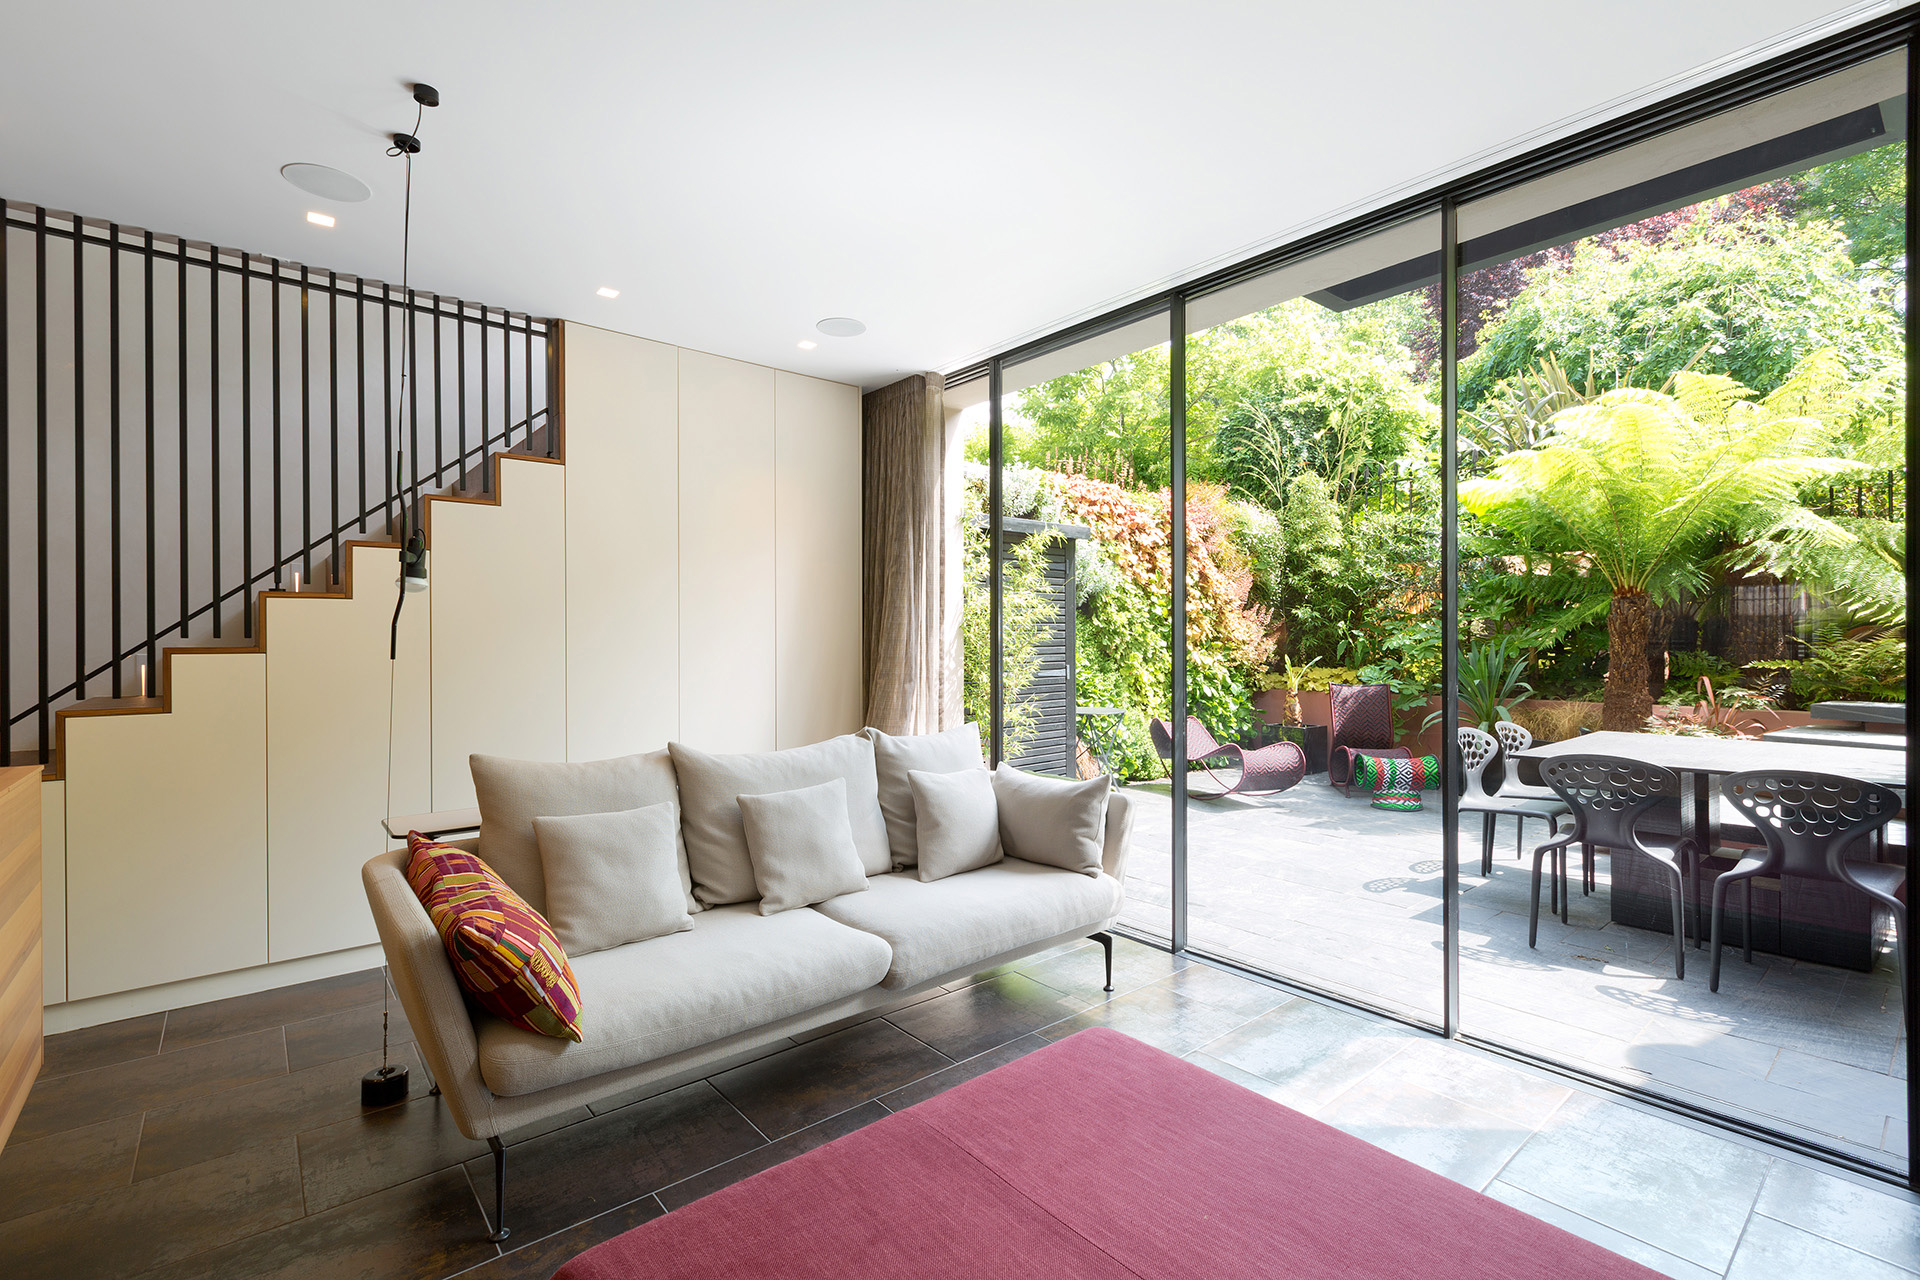 Studio 29 residential architects garden holland park 01